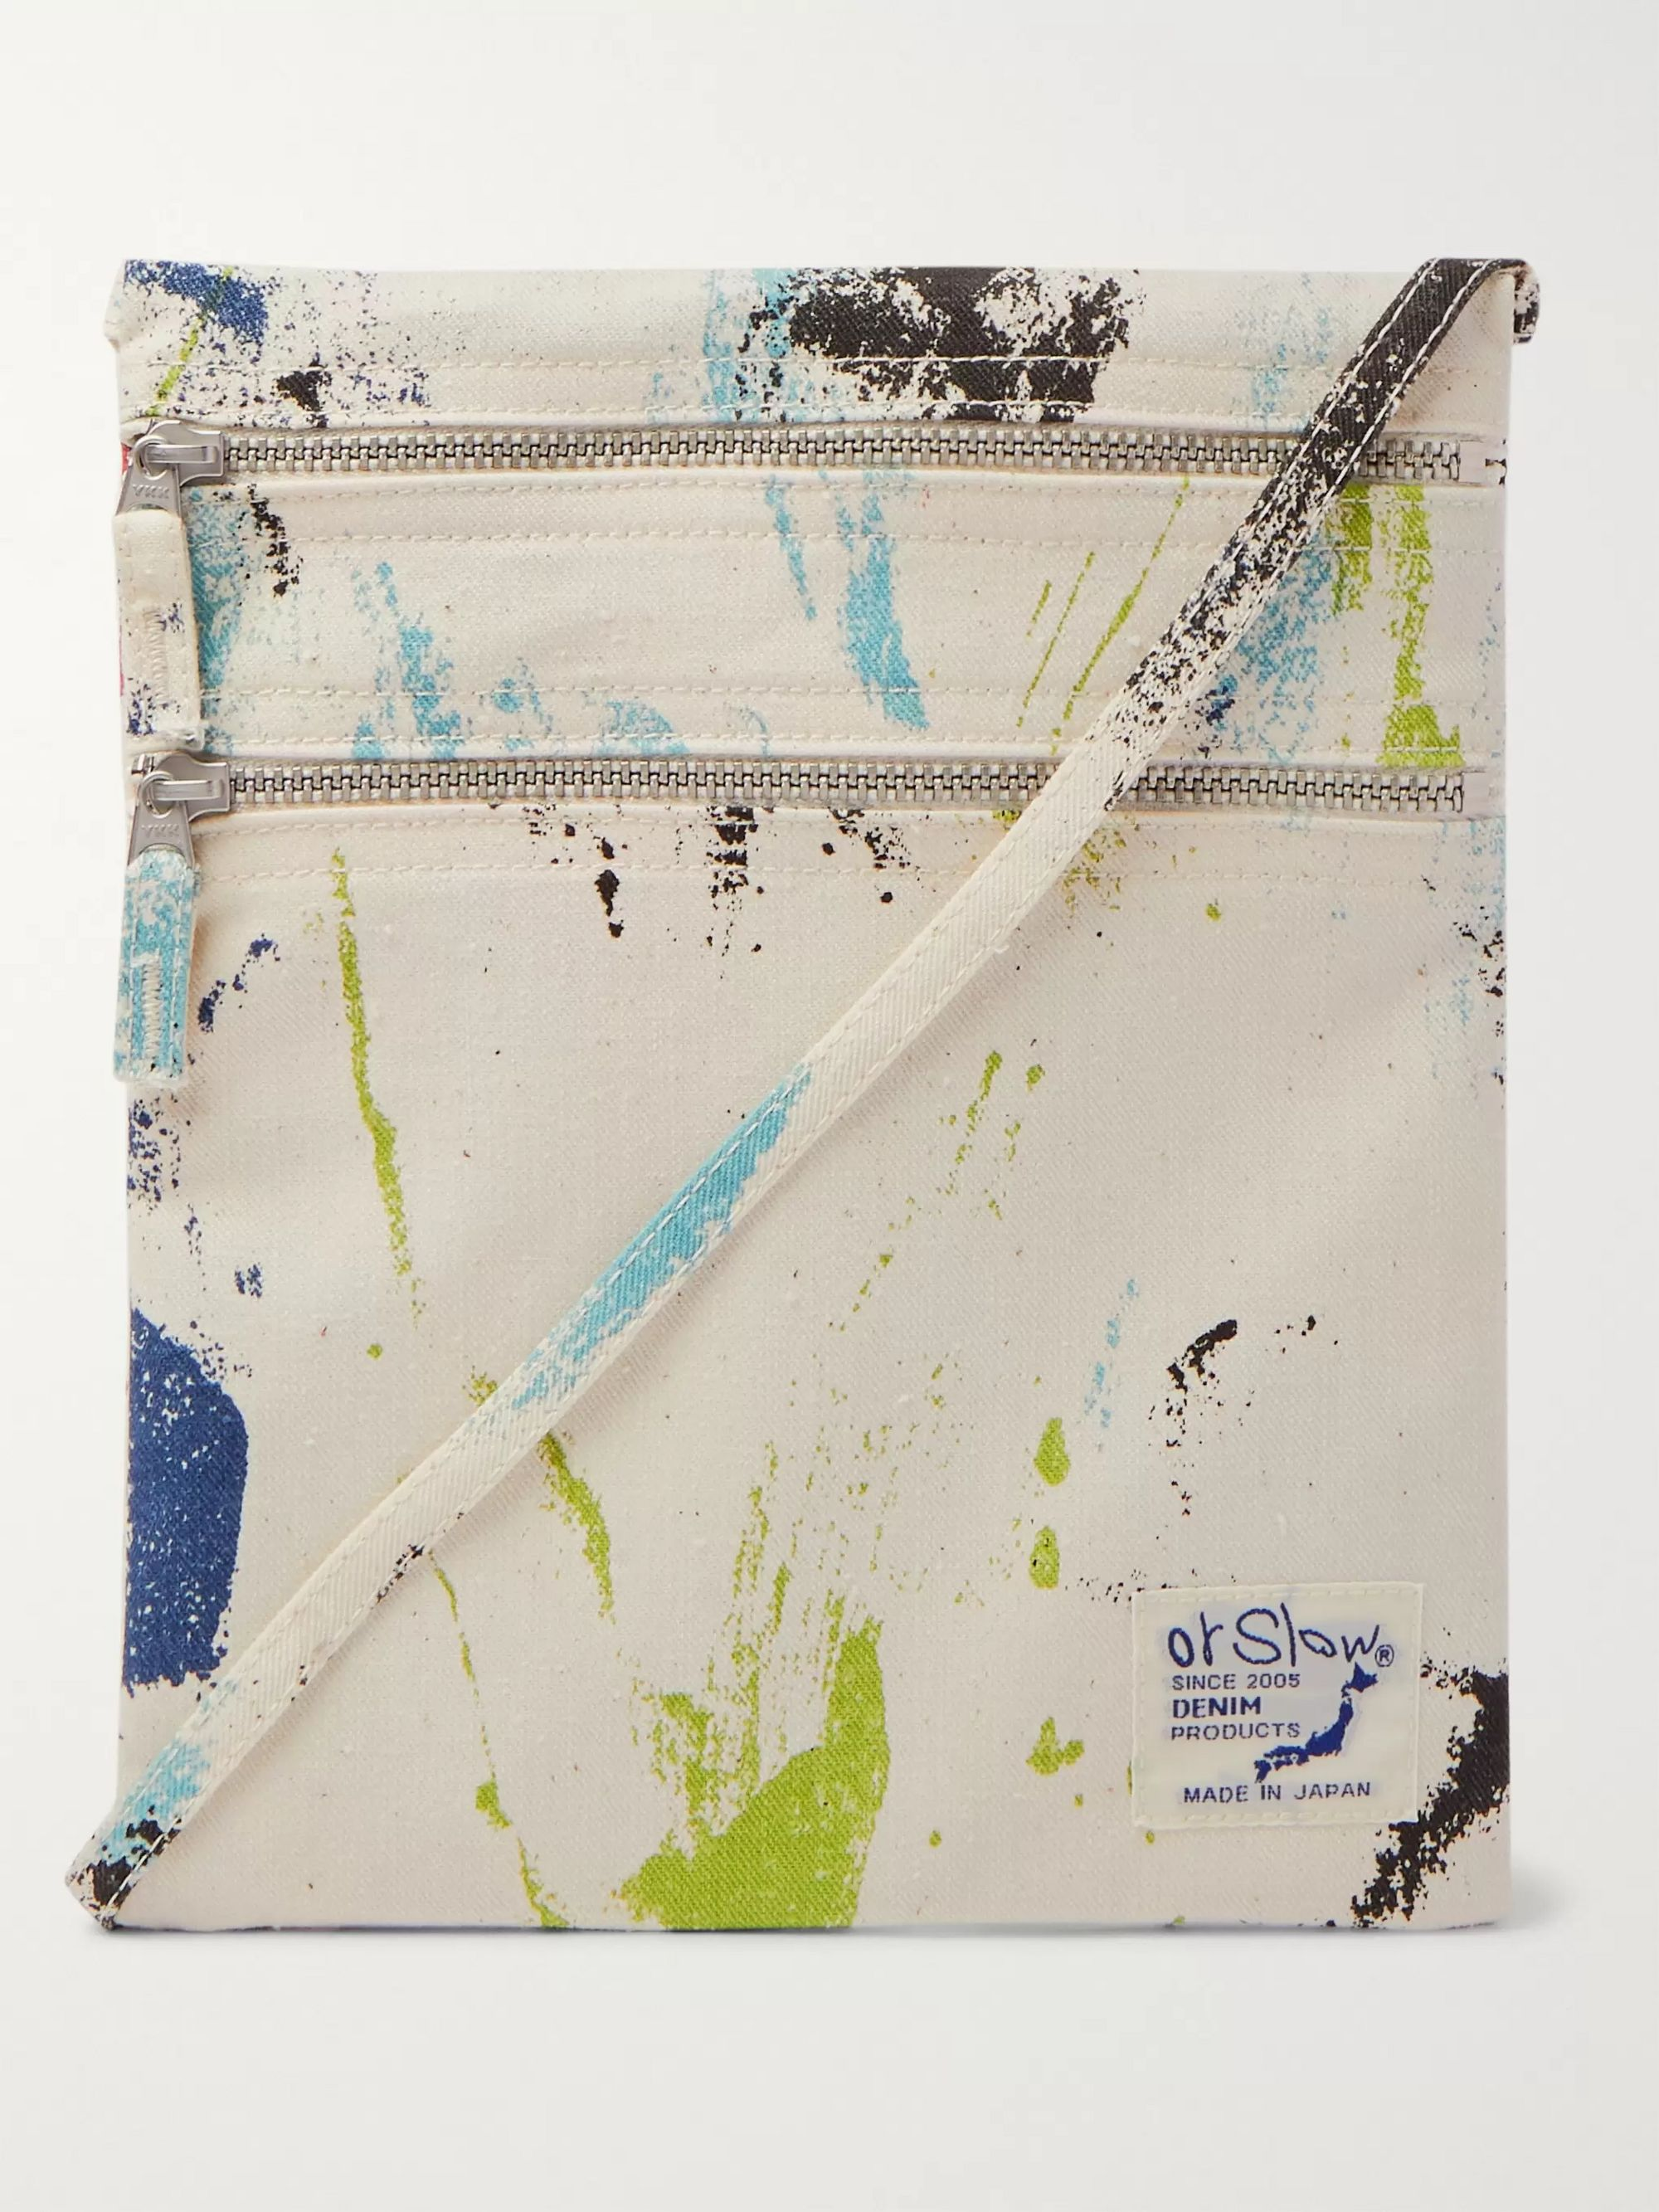 OrSlow Printed Denim Pouch